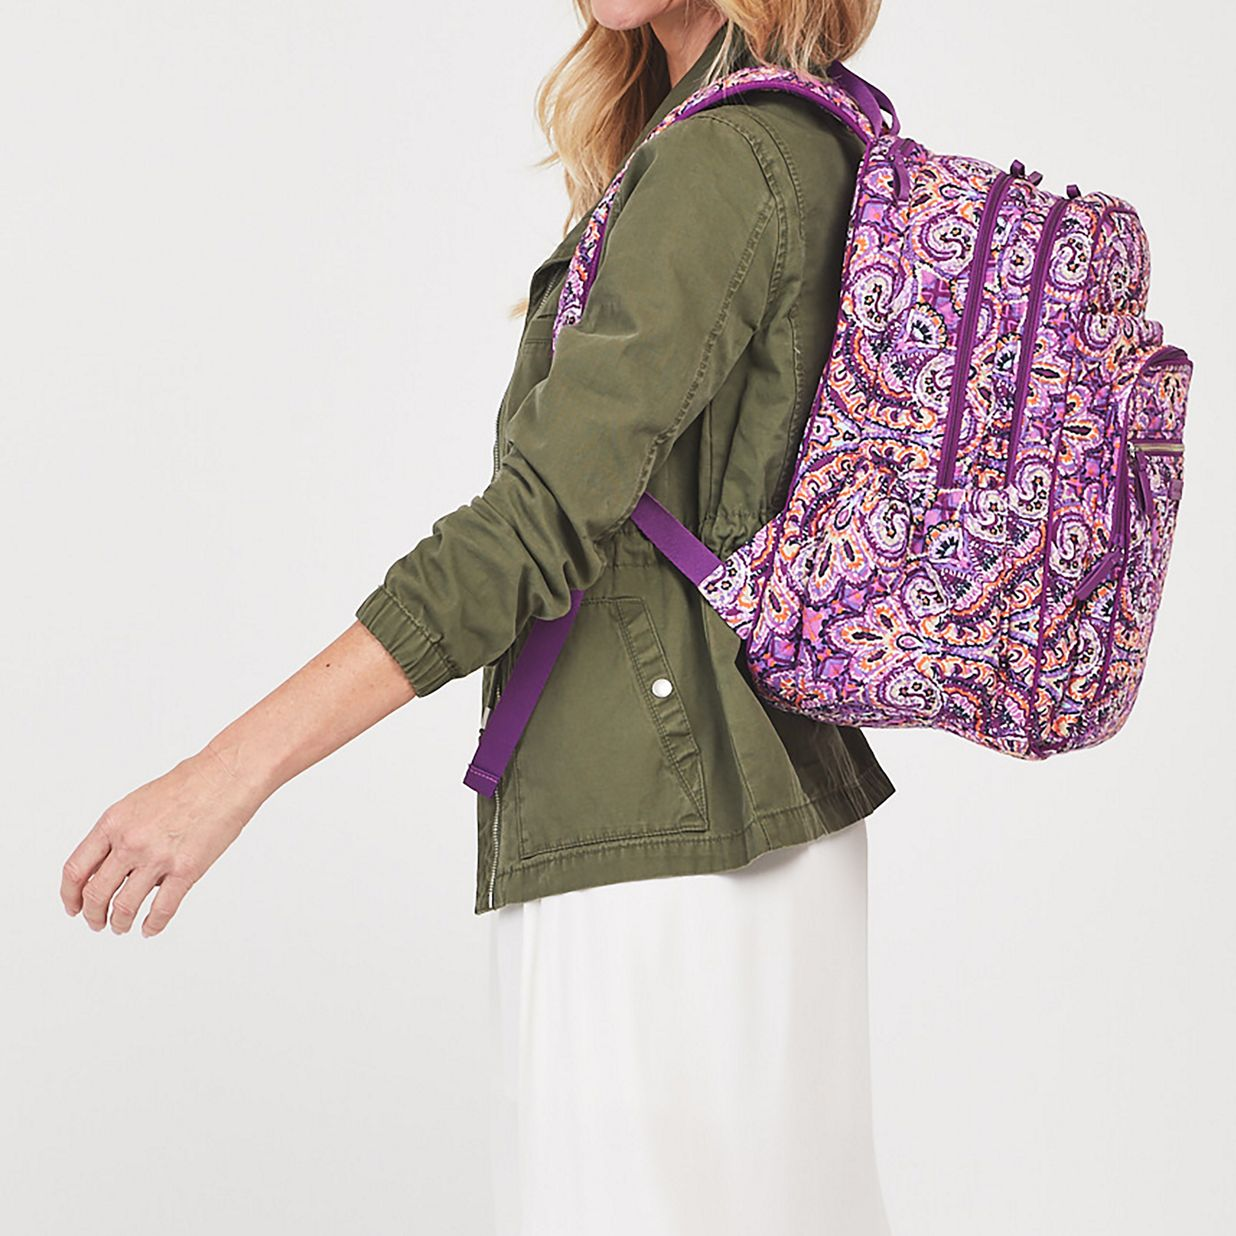 0c1ceefd3283 ... Image of Iconic XL Campus Backpack in Butterfly Flutter